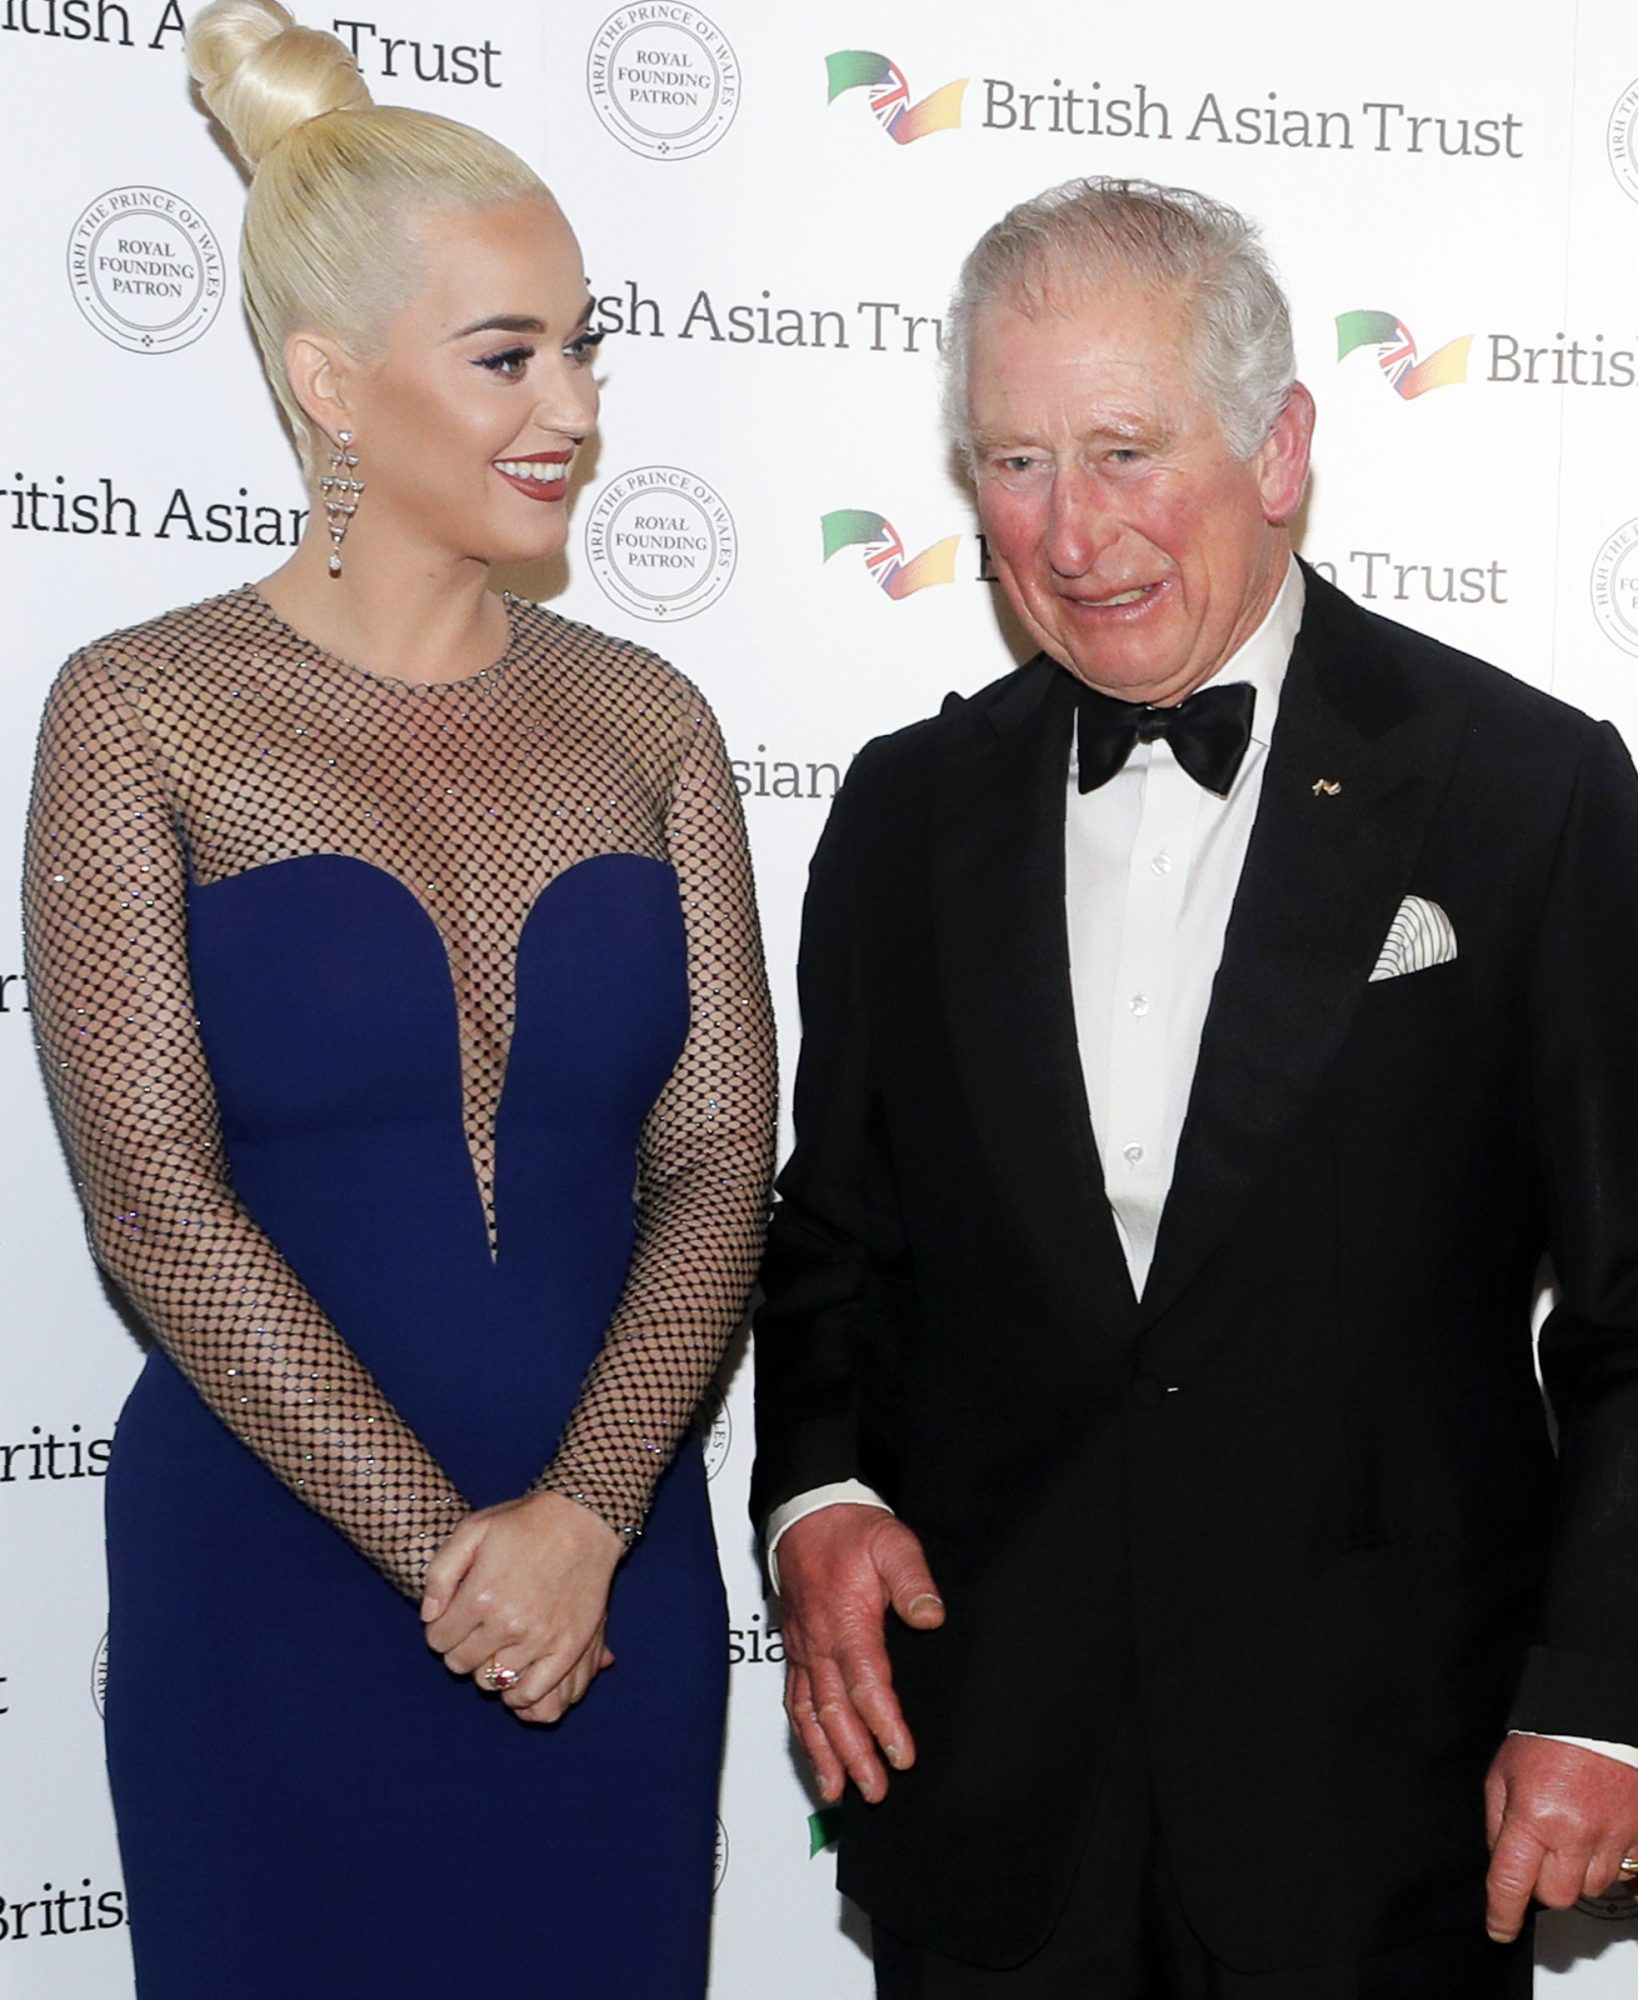 Prince Charles, Prince of Wales, Royal Founding Patron of the British Asian Trust poses with musician Katy Perry